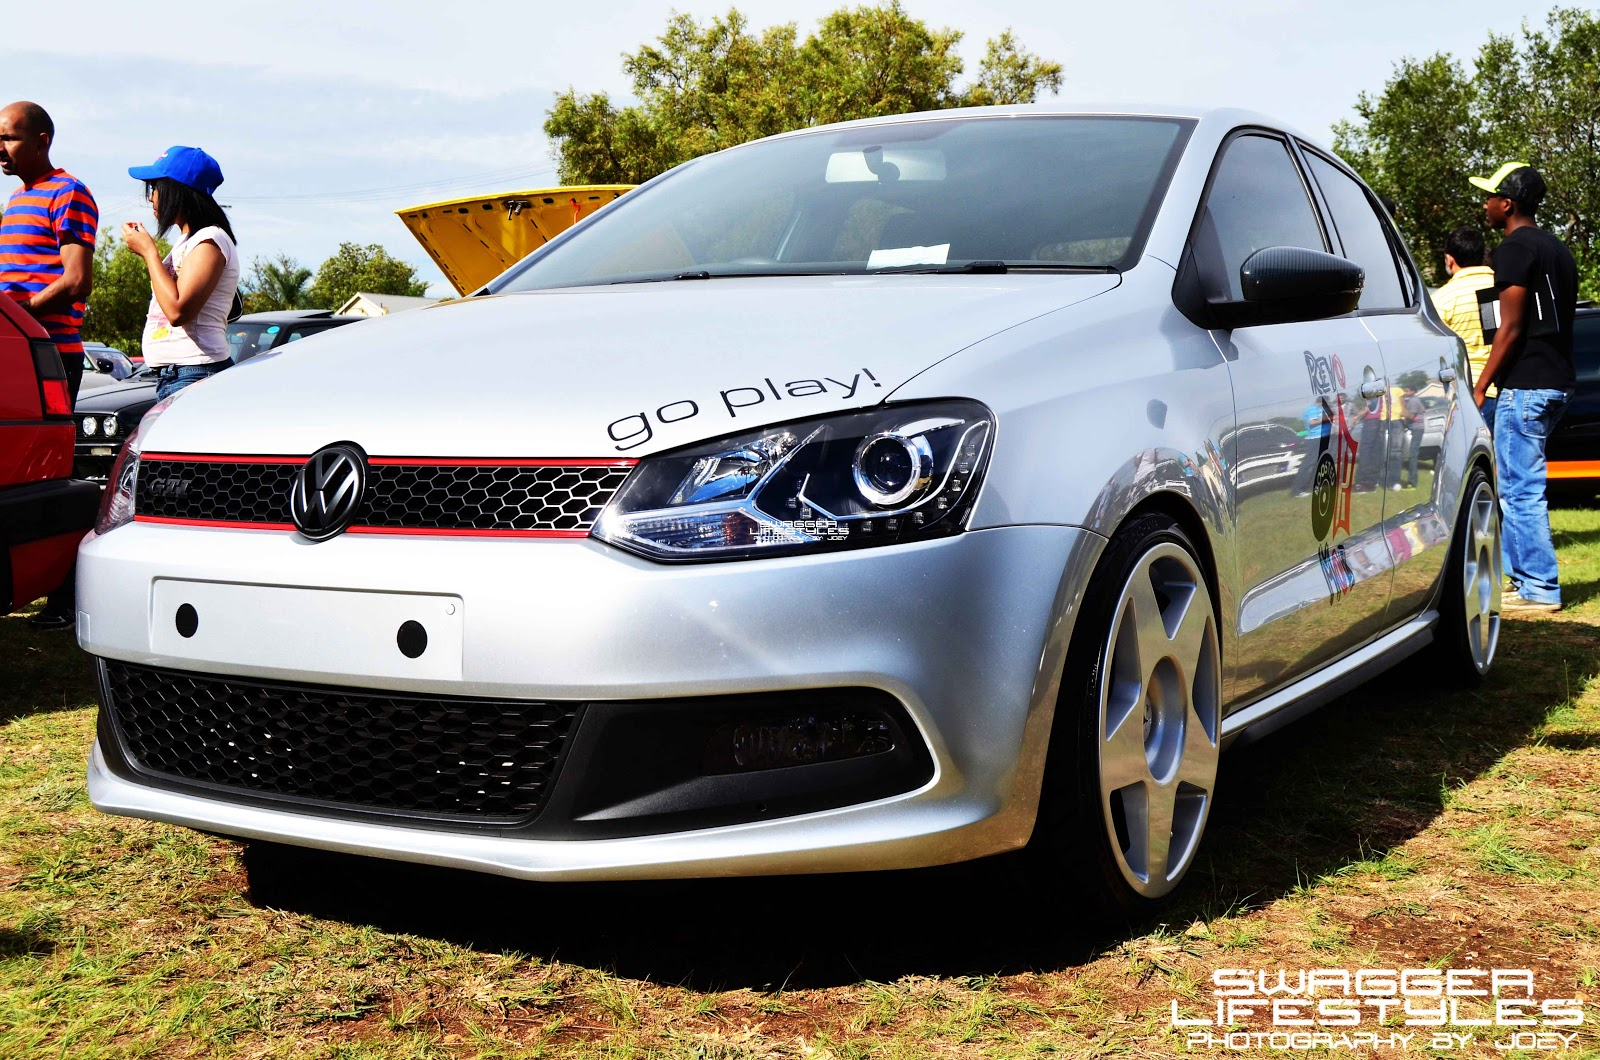 Swagger Lifestyles Car Fest Hosted By City Tyres  Xxx -7010